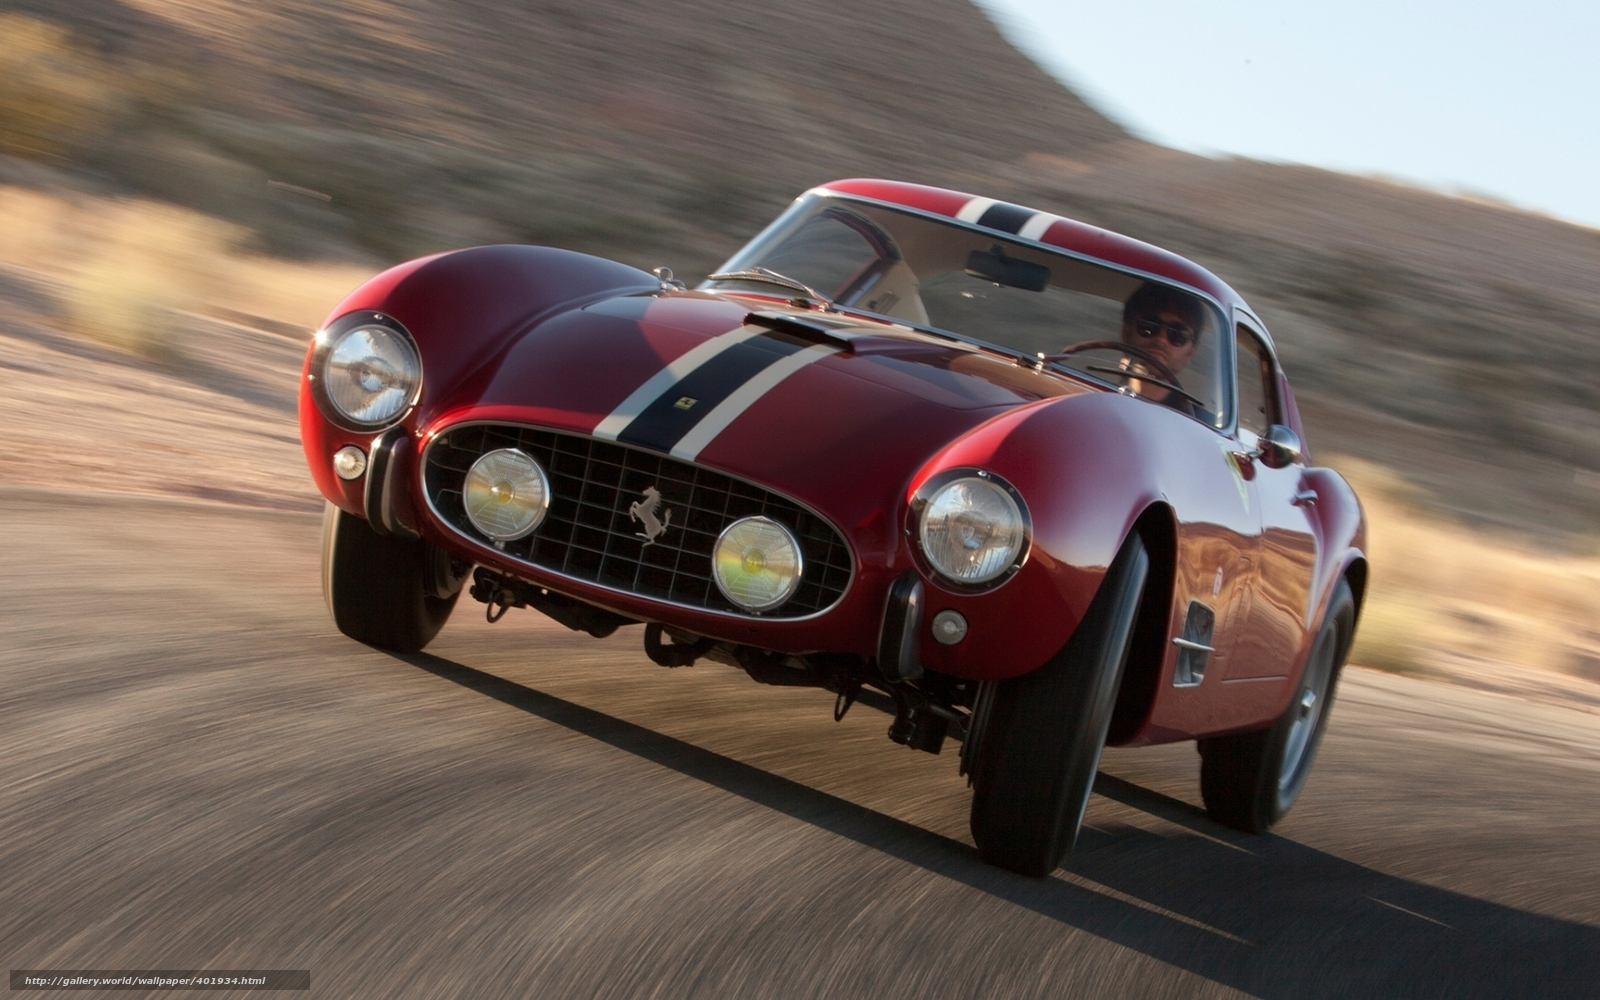 Download Wallpaper Ferrari Red Front Classic Free Desktop Wallpaper In The Resolution 1680x1050 Picture 401934